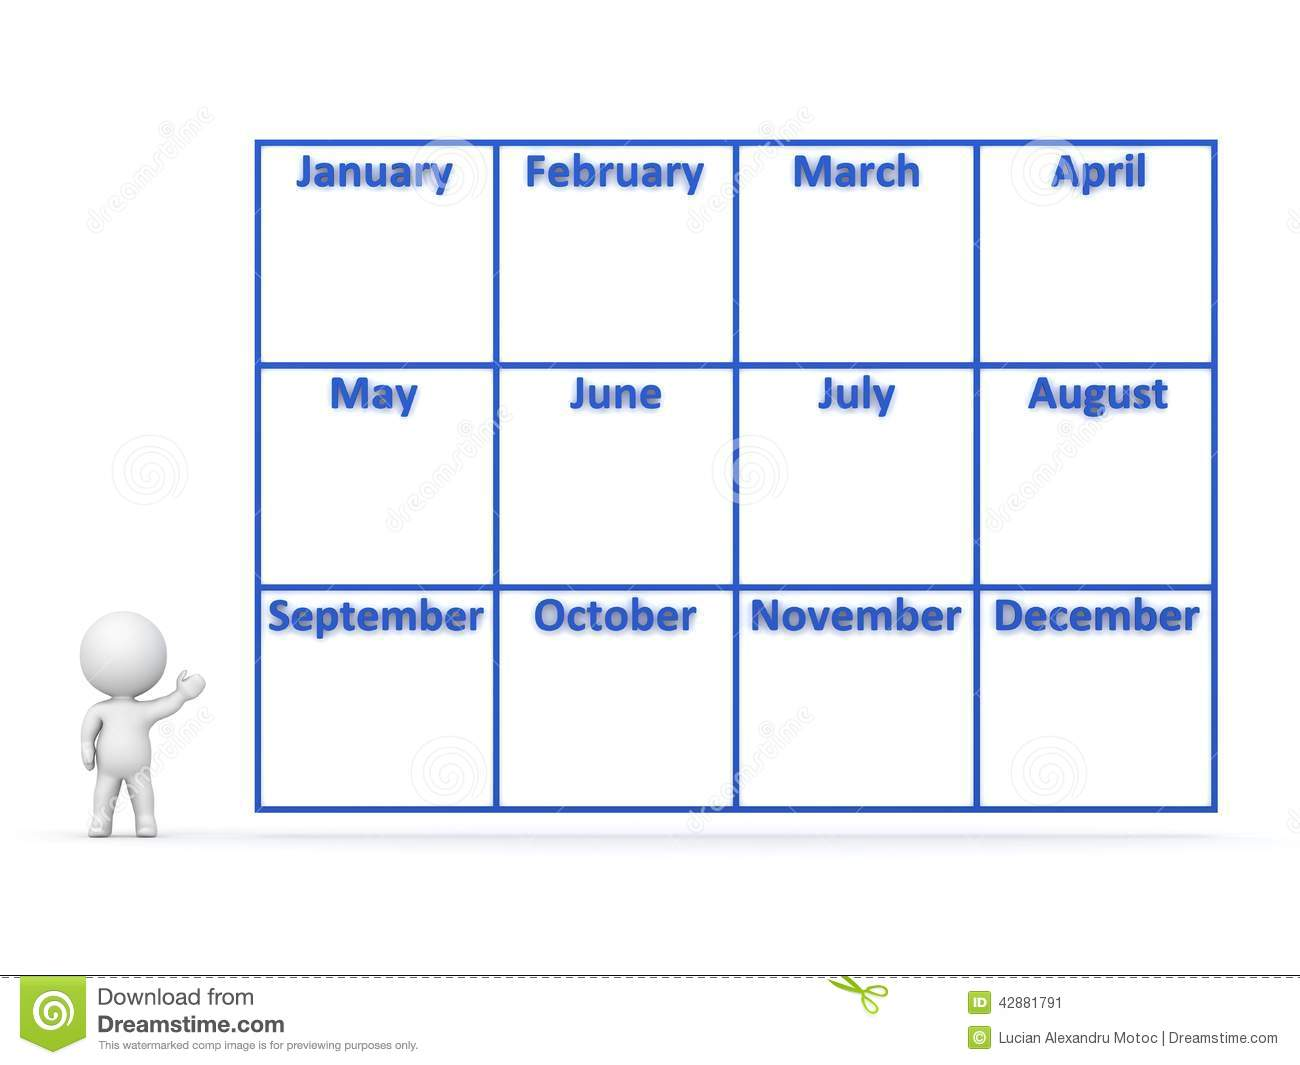 3d Character Showing Year Calendar With 12 Months Stock